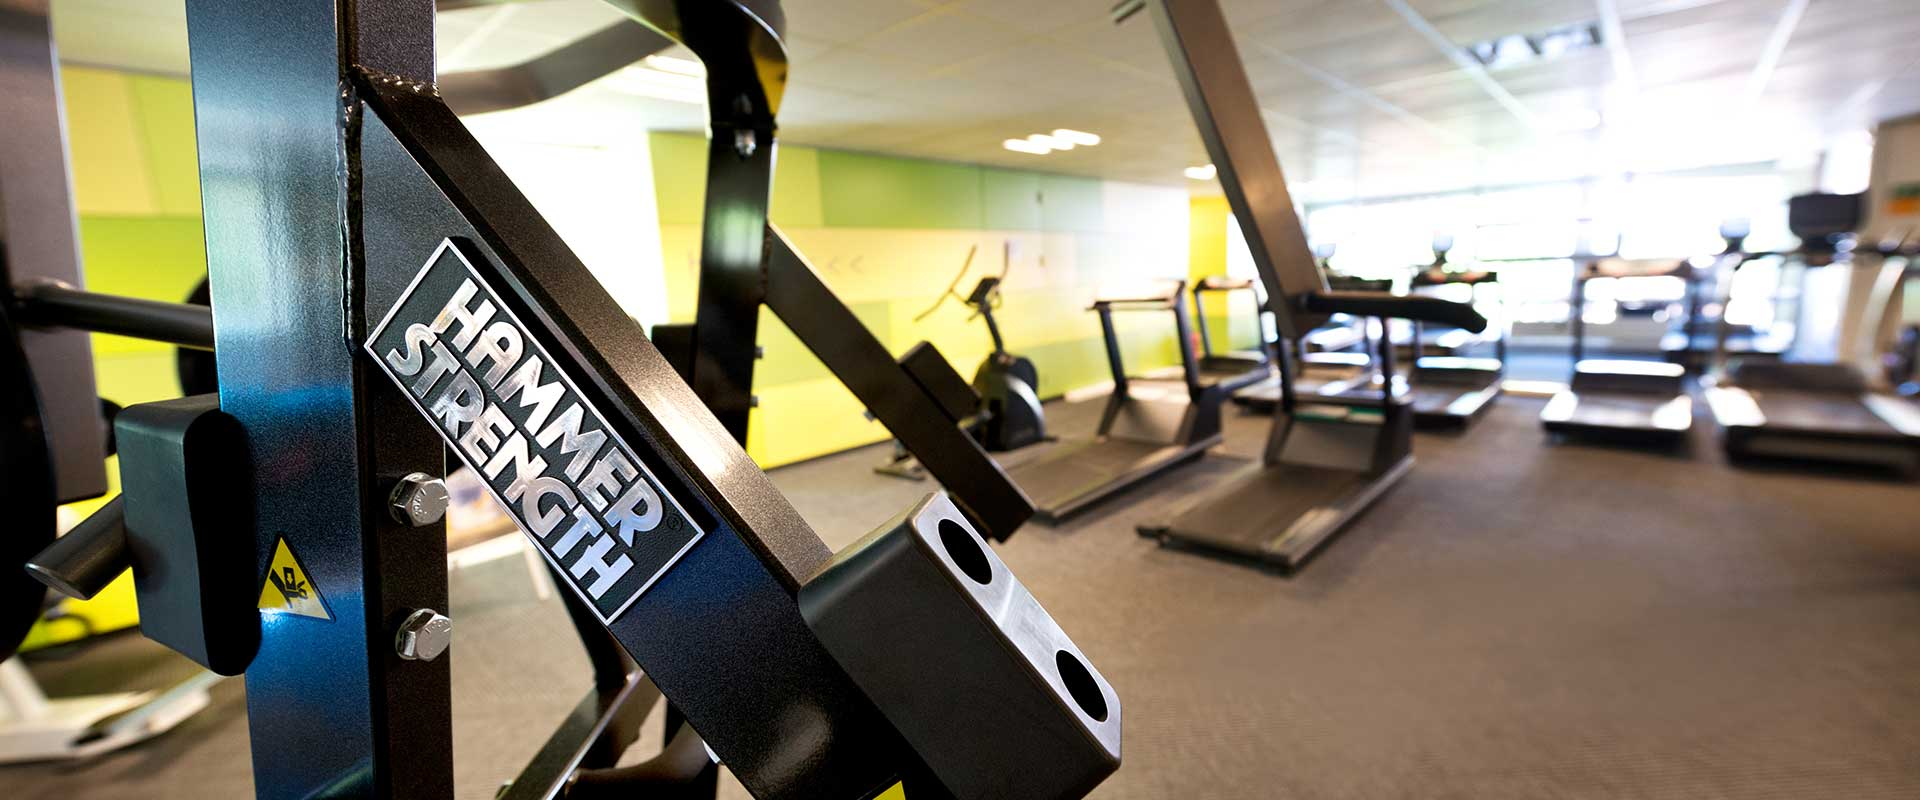 Fit`n´Well Fitness